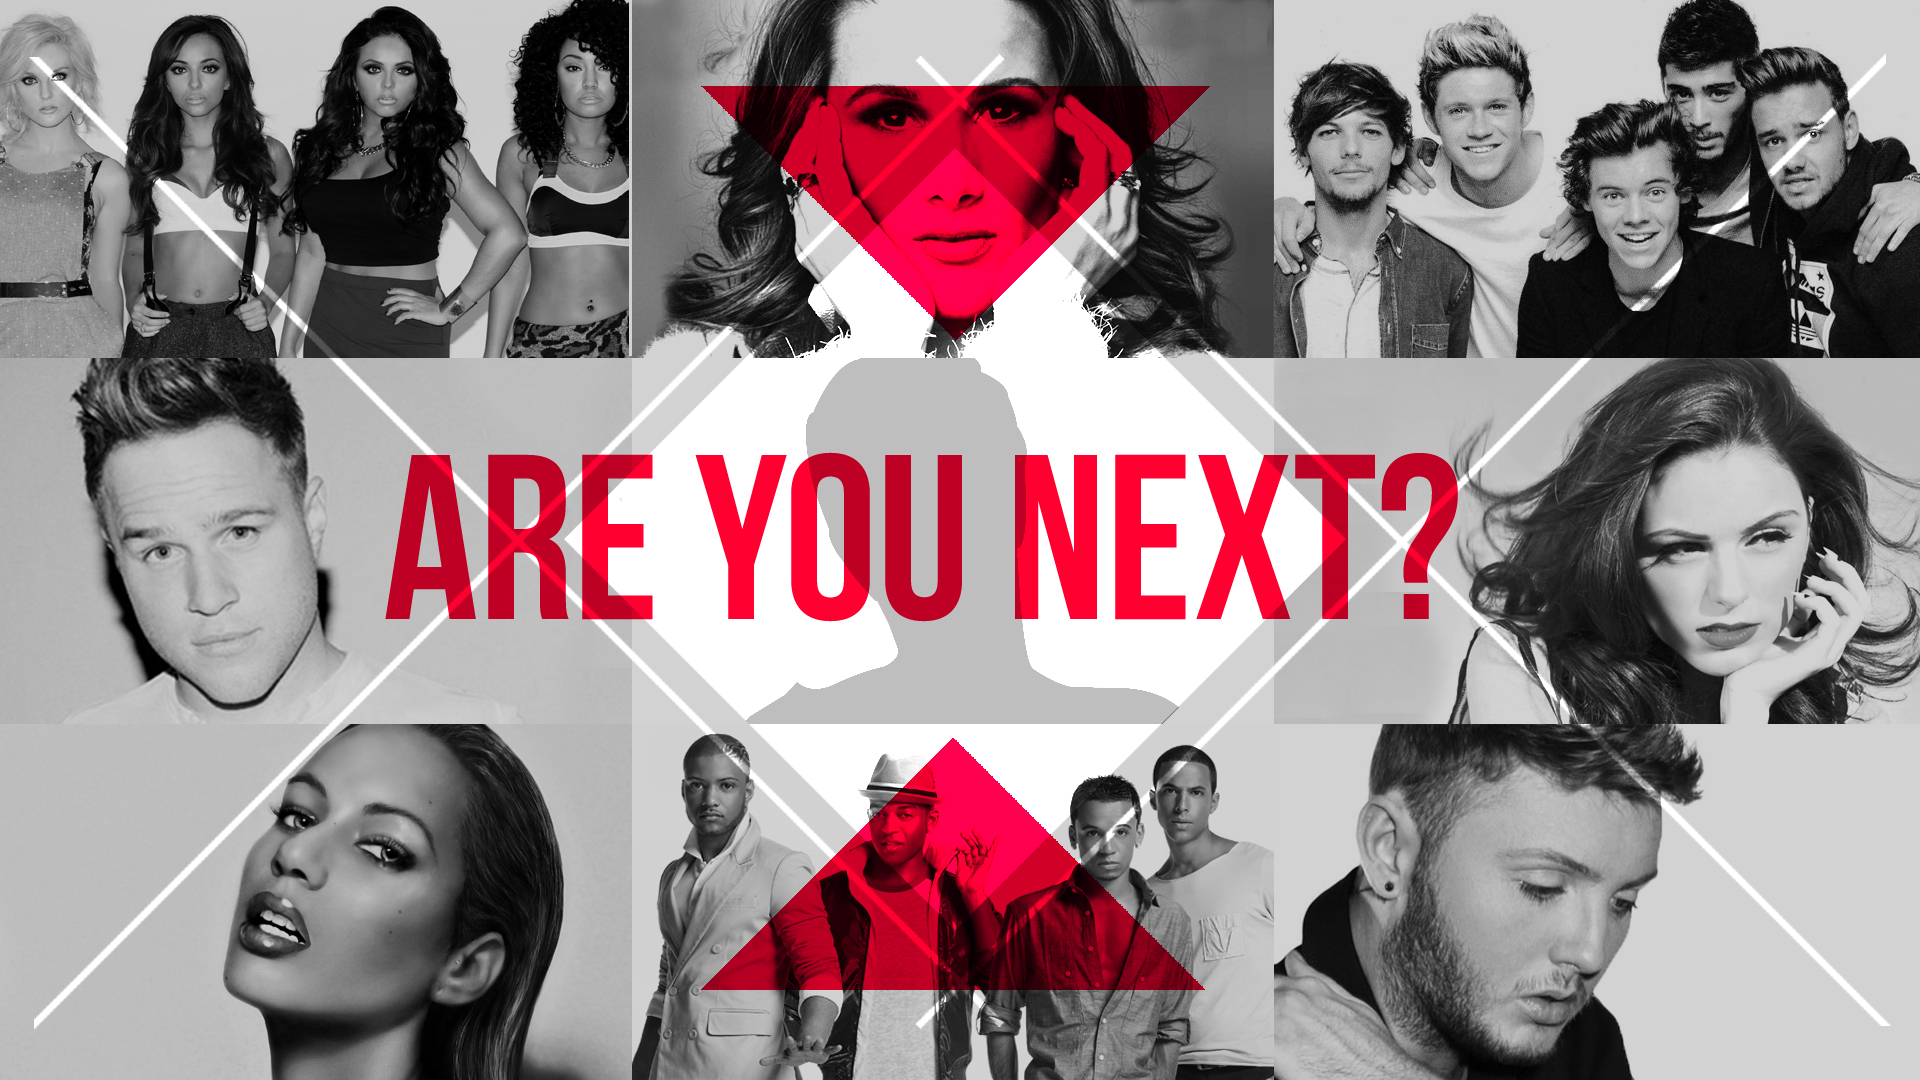 X Factor auditions are heading to Warrington